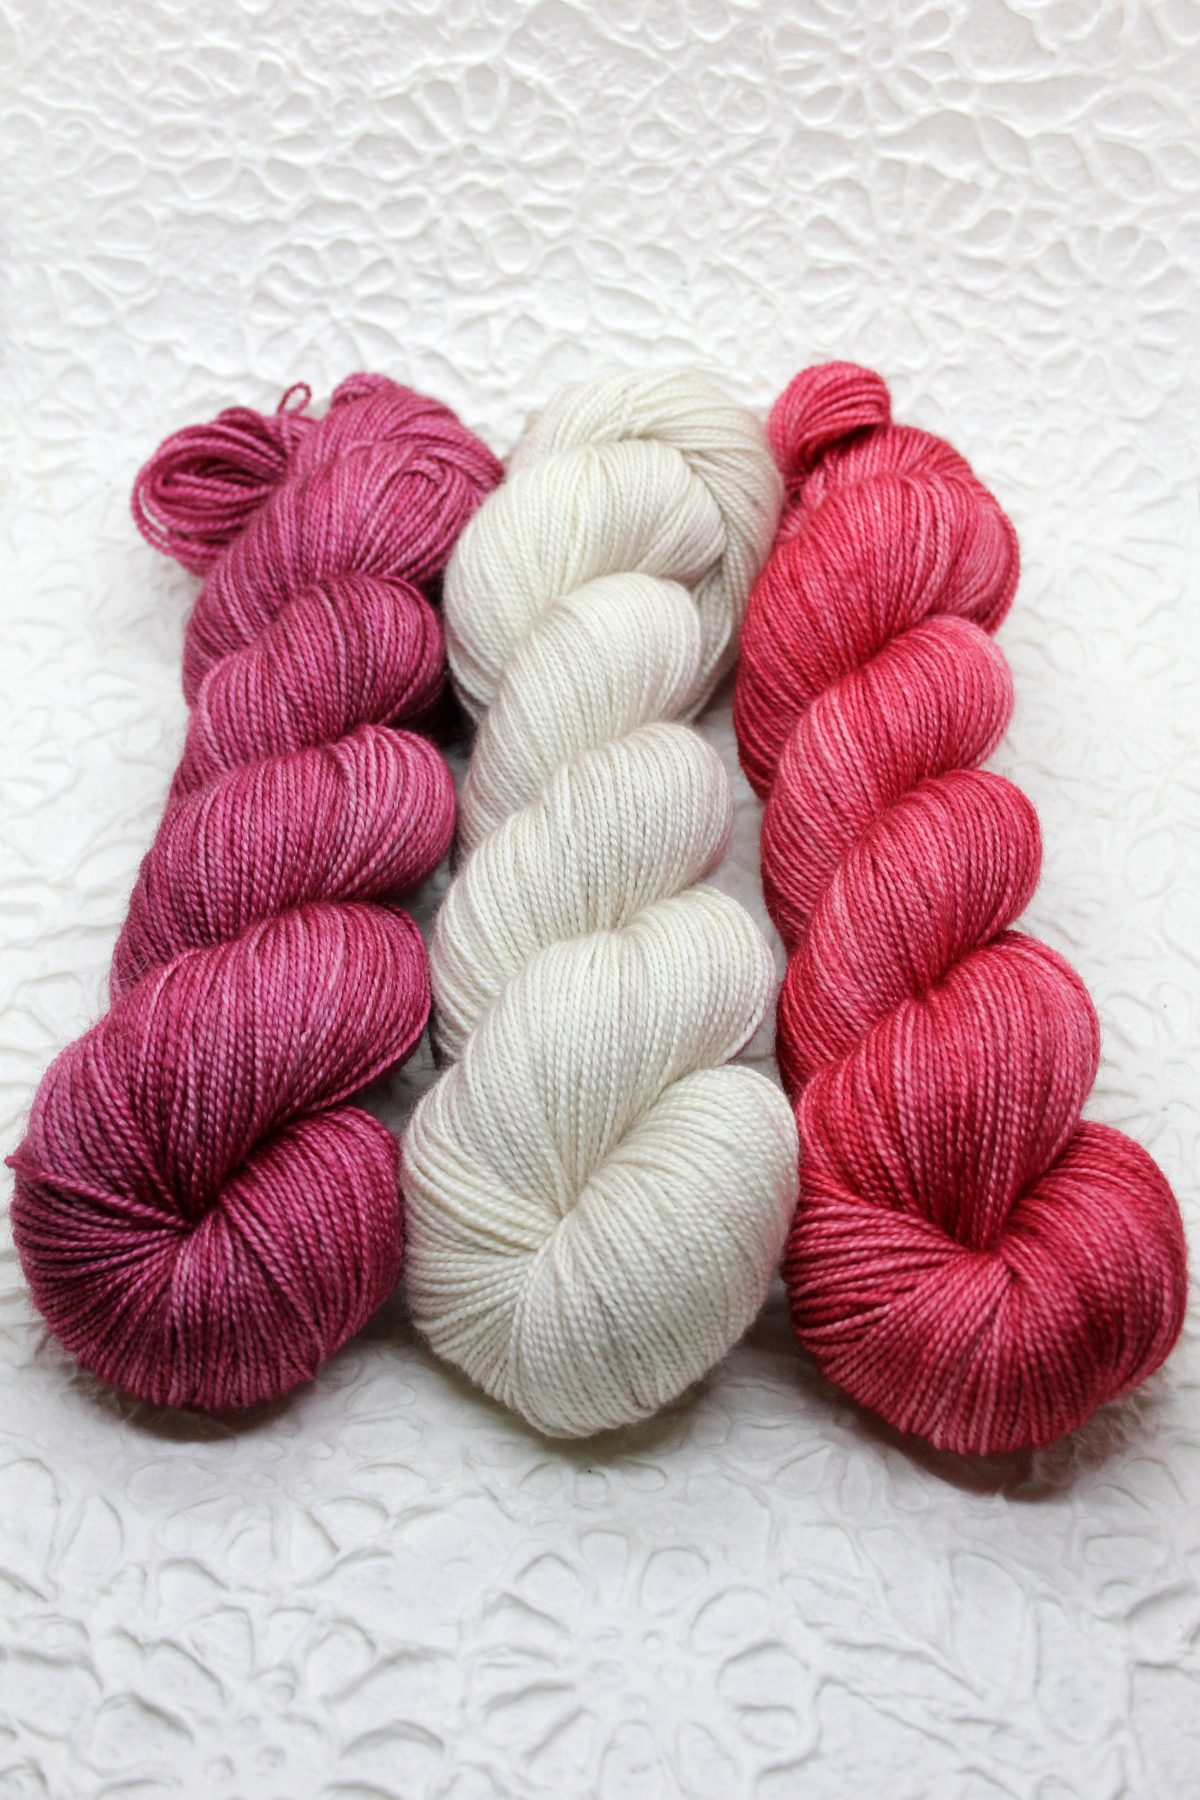 Kits 3 skeins